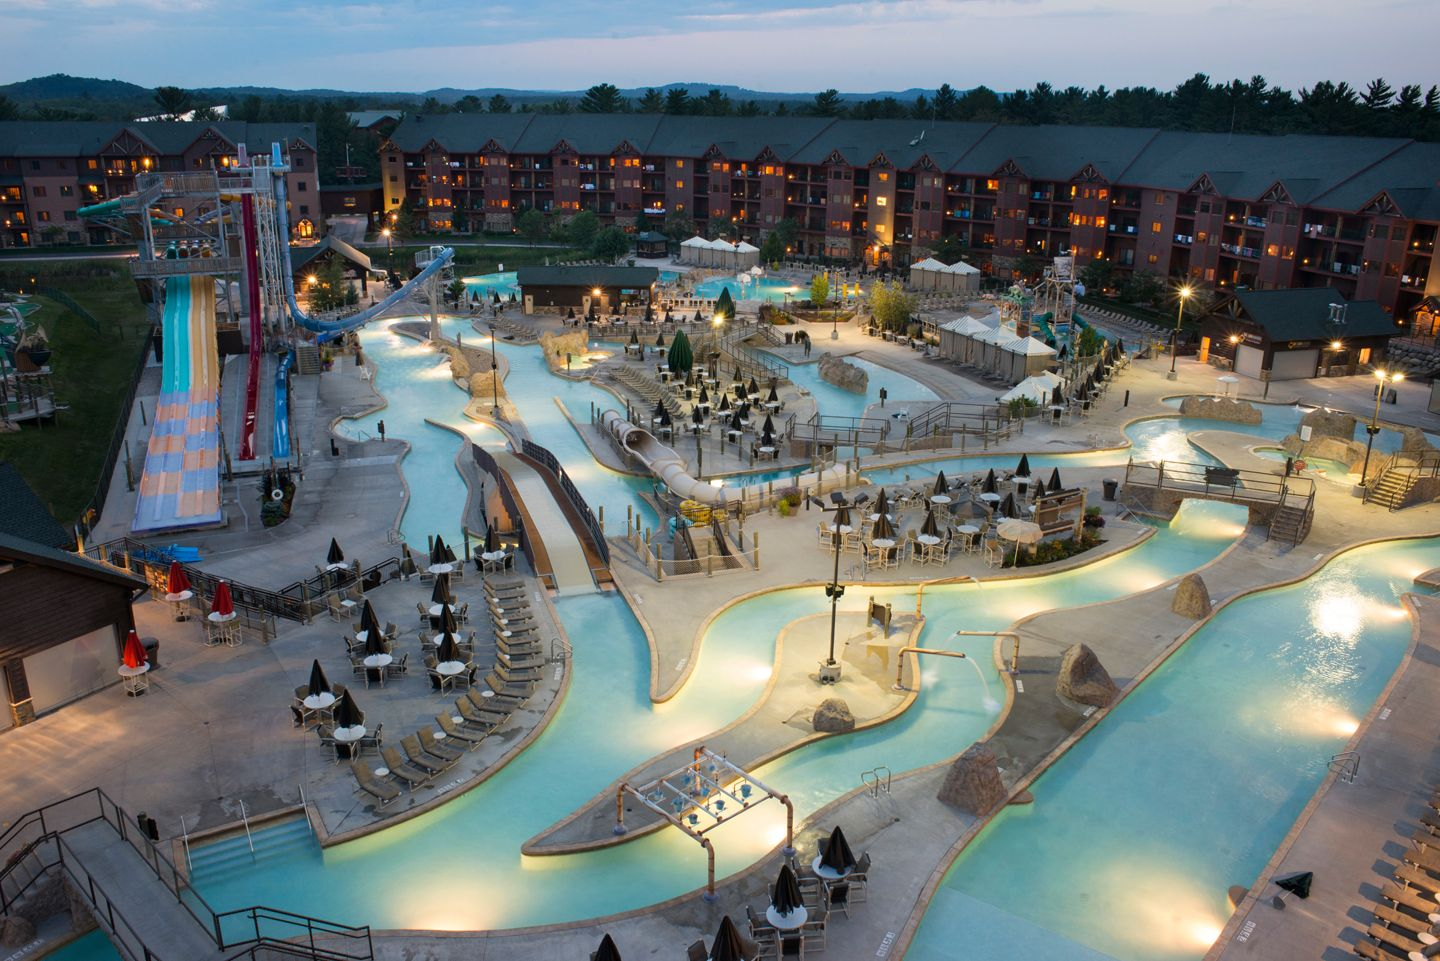 lost world outdoor waterpark at dawn glacier canyon lodge. Black Bedroom Furniture Sets. Home Design Ideas